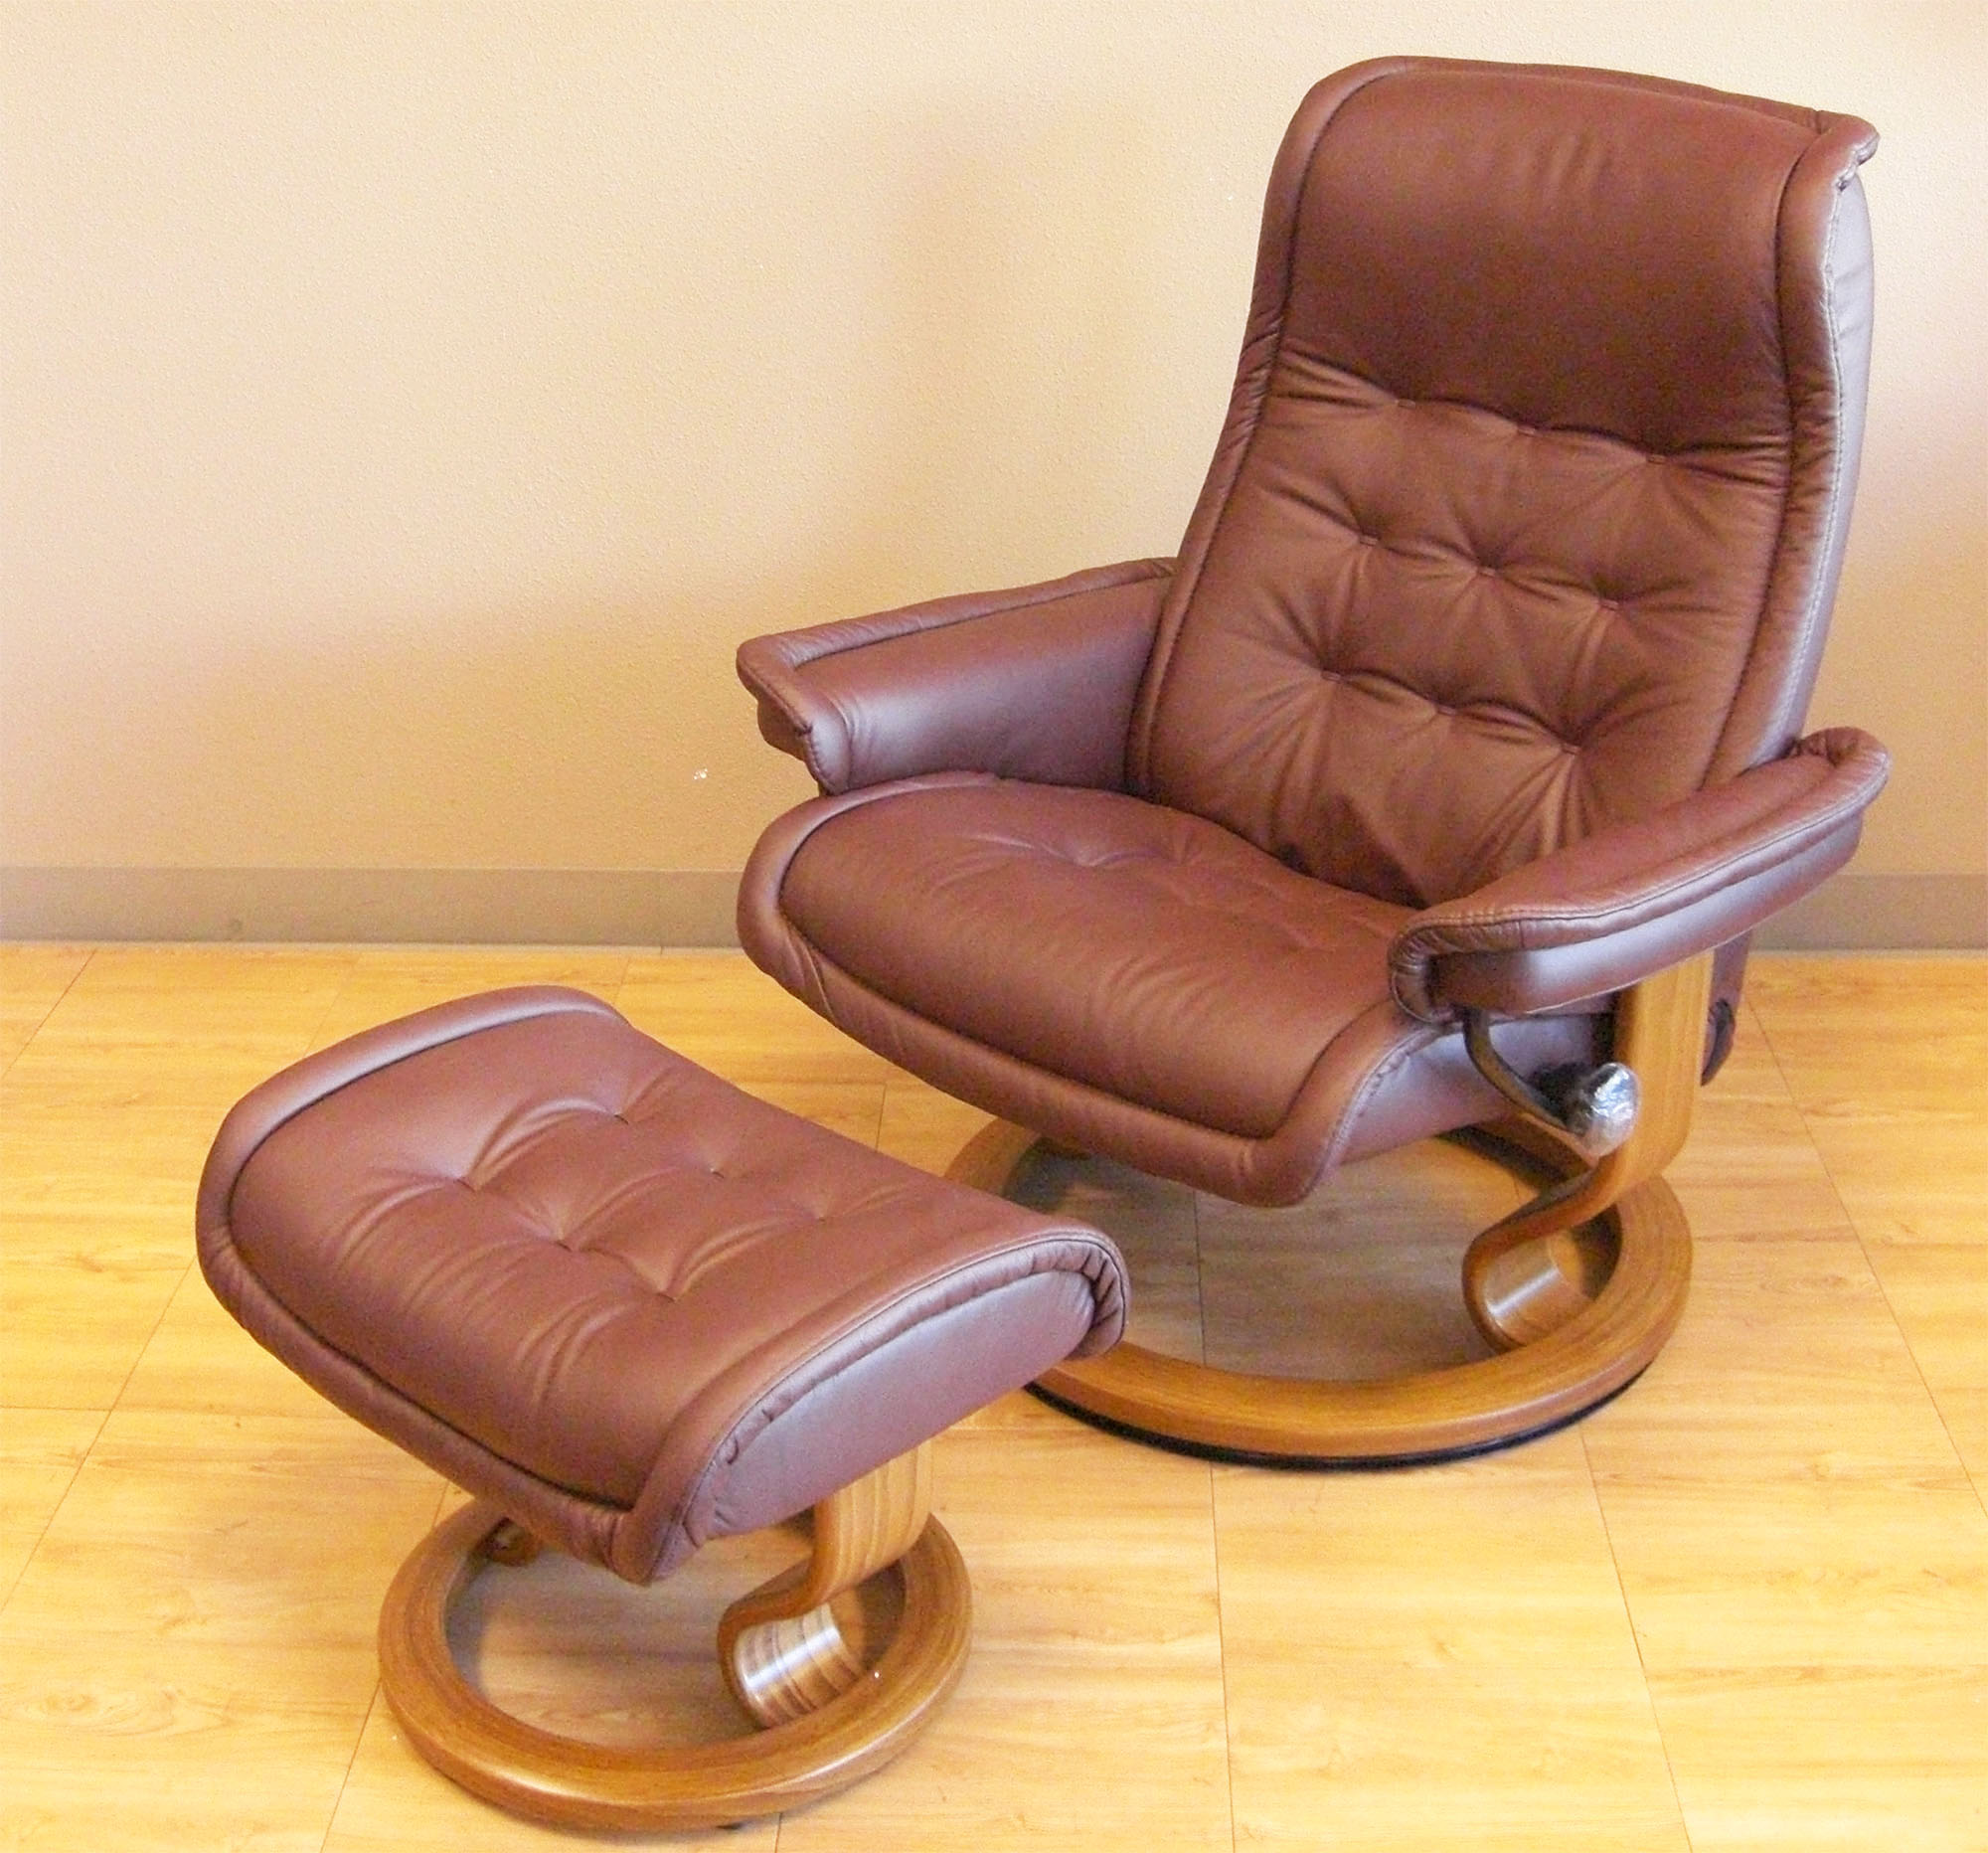 zero gravity office chair with Stressless Royal Paloma Coffee Leather Recliner Chair on Stressless Royal Paloma Coffee Leather Recliner Chair further 200973202091779331 in addition fineback co in addition Full Recliner Chair in addition massagechairland.